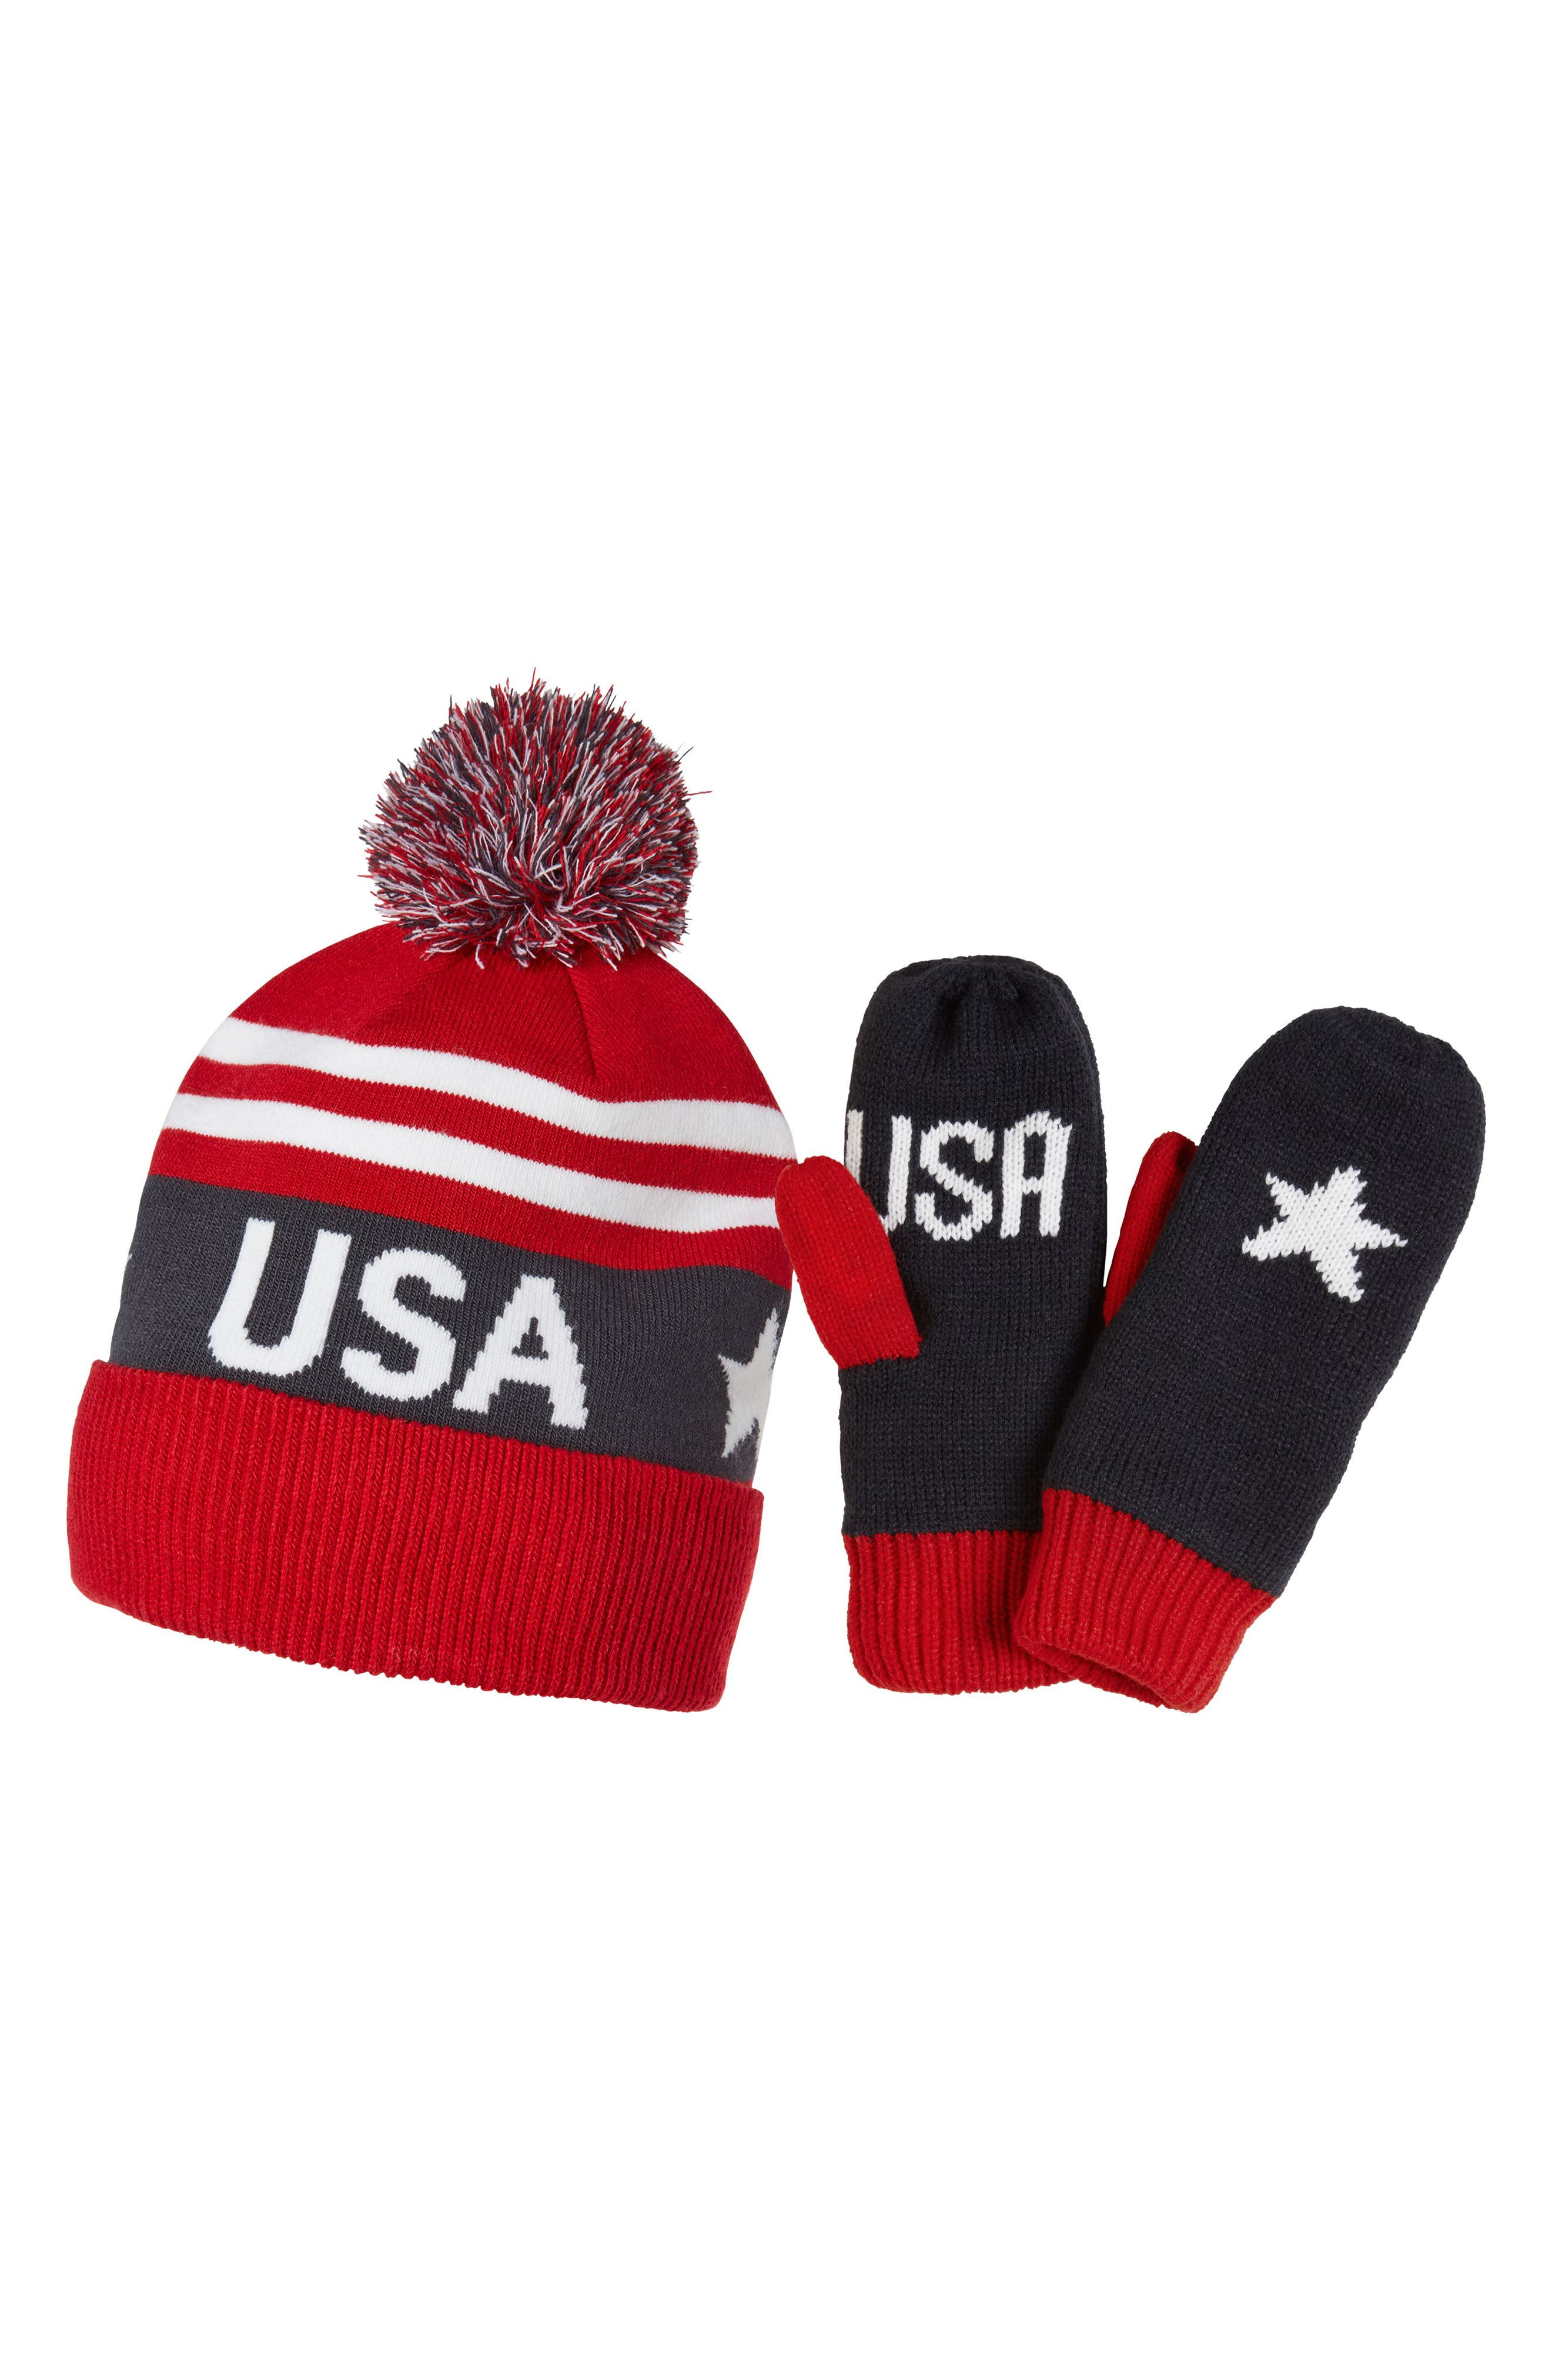 Main Image - Helly Hansen Going For Gold Knit Cap & Mittens Gift Set